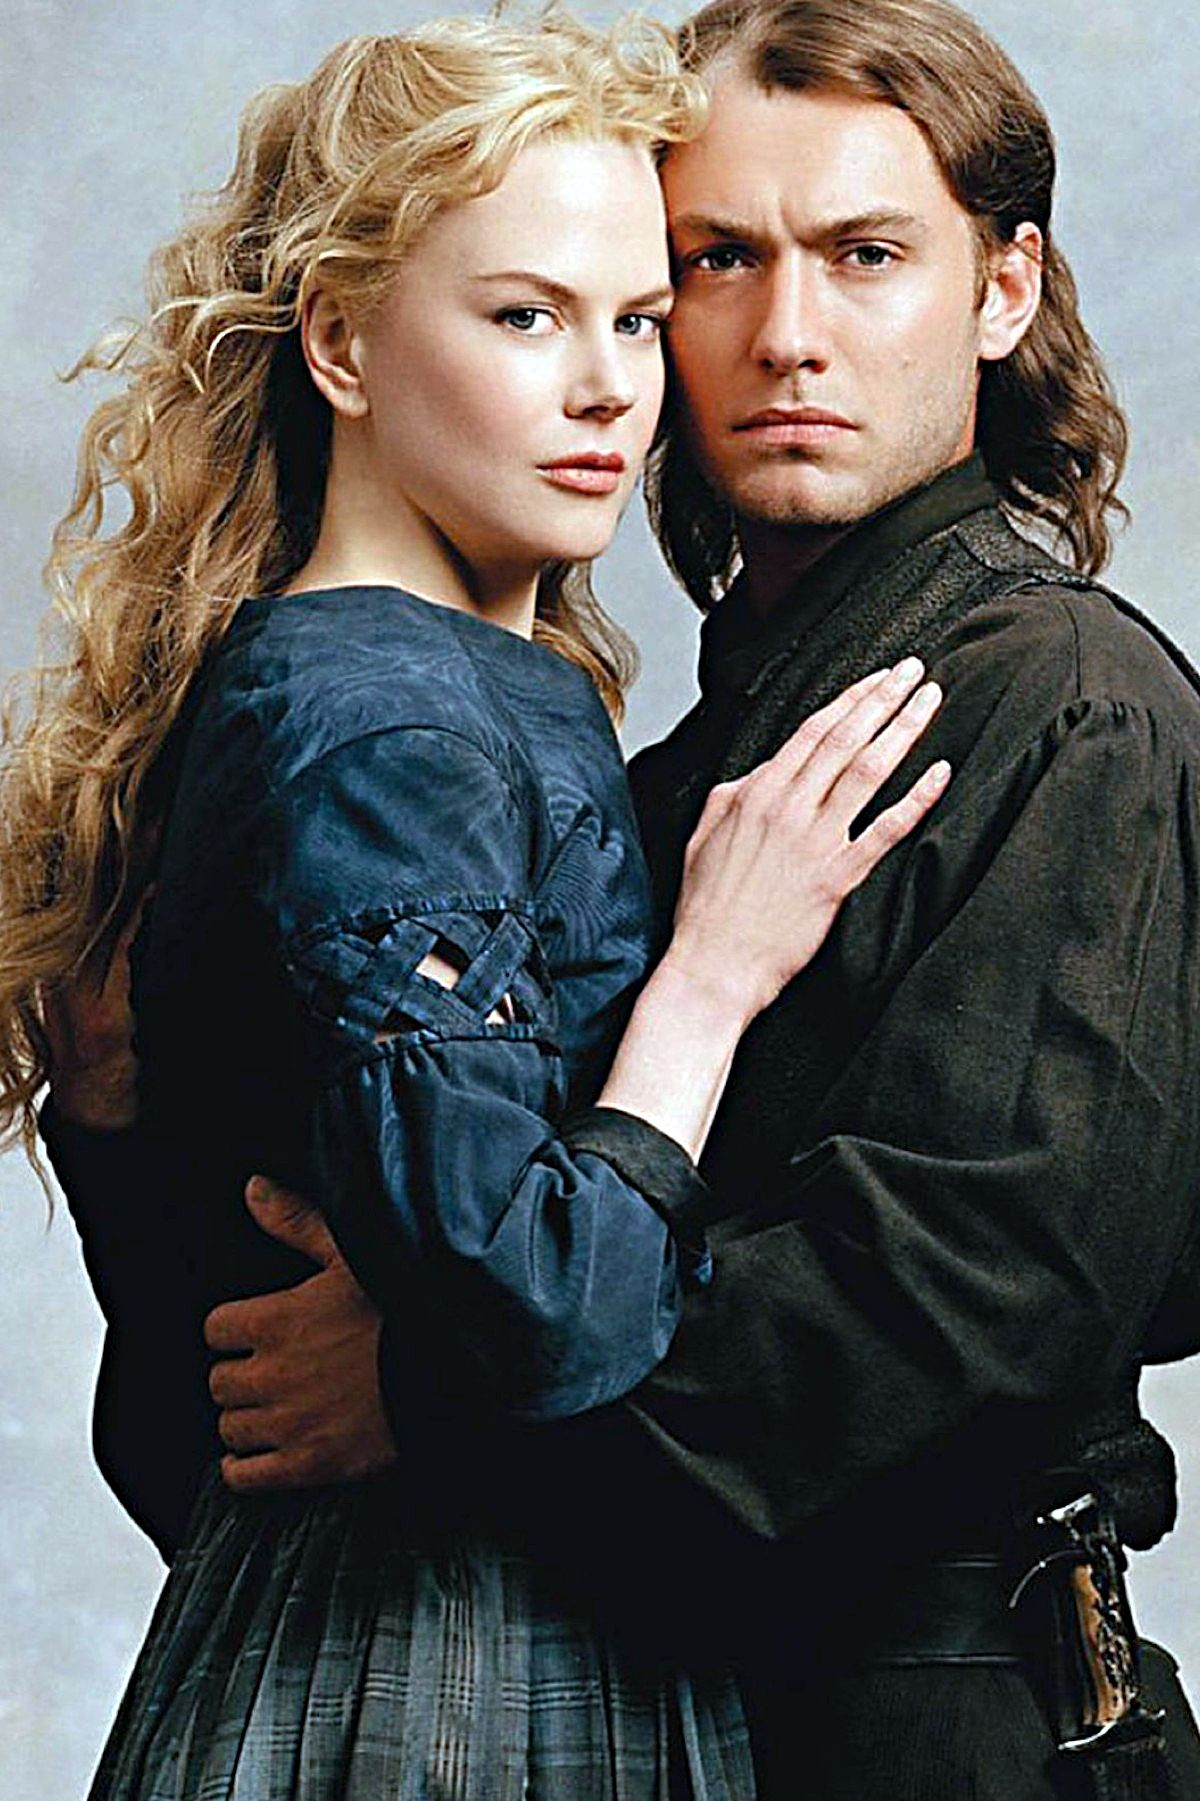 cold mountain ada monroe Monroe is ada's father he appears in the novel only in ada's memory, as a  loving yet overindulgent father he moved ada to cold mountain when he sought  a.